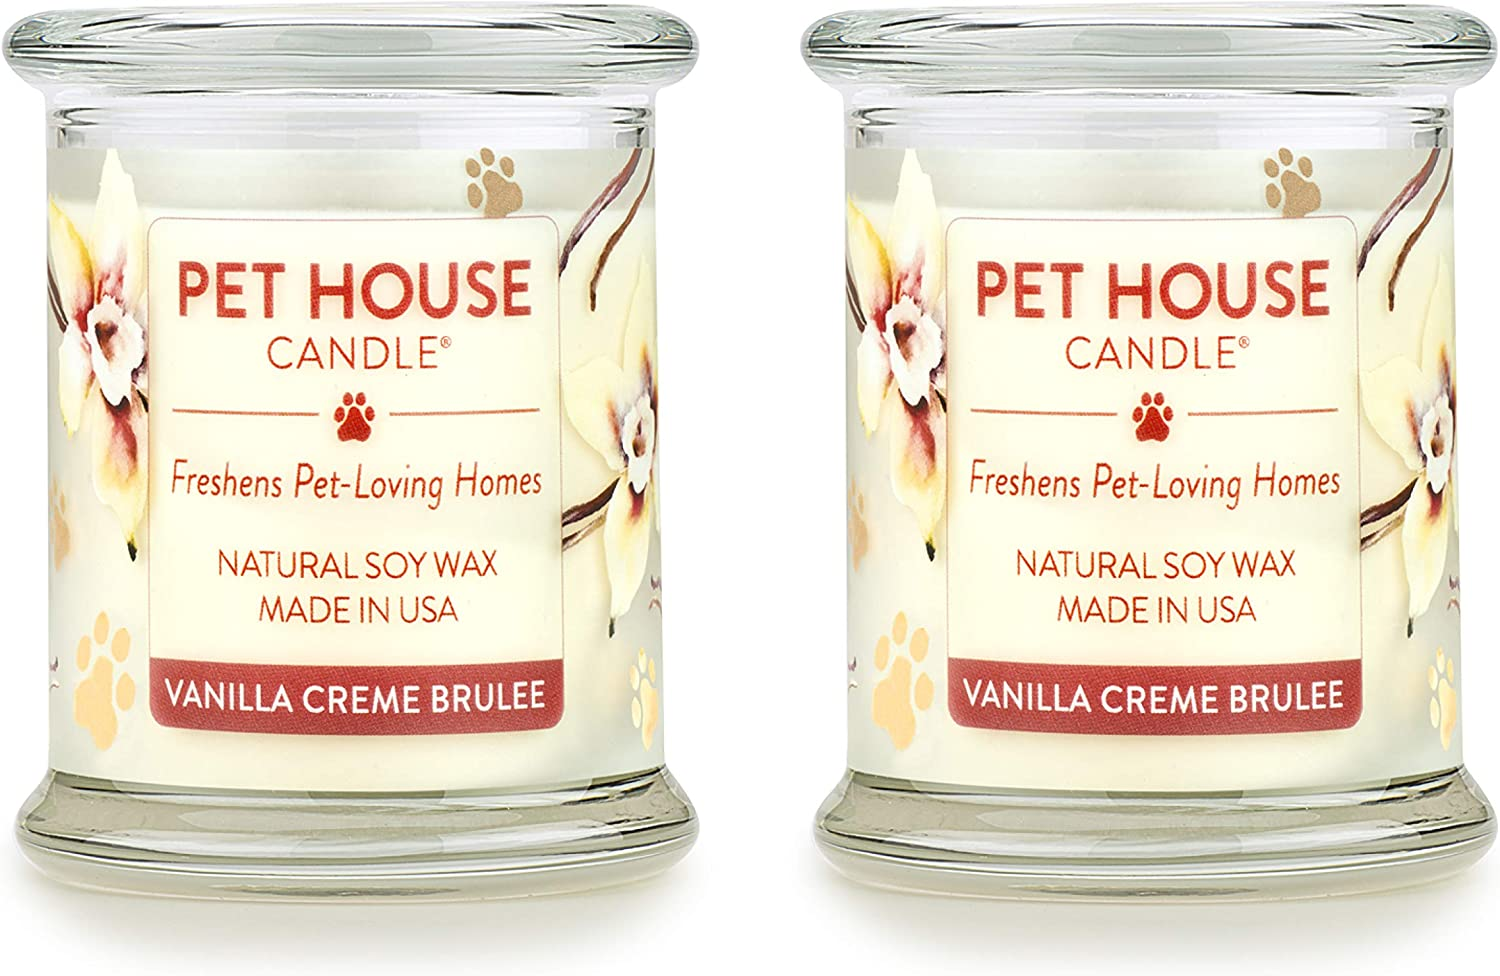 Non-Toxic Pumpkin Spice 100/% Natural Soy Wax Candle Pet House Candle Eco-Friendly Reusable Glass Jar Scented Candles Up to 60 Hours Burn Time 20 Fragrances Pet Odor Eliminator One Fur All